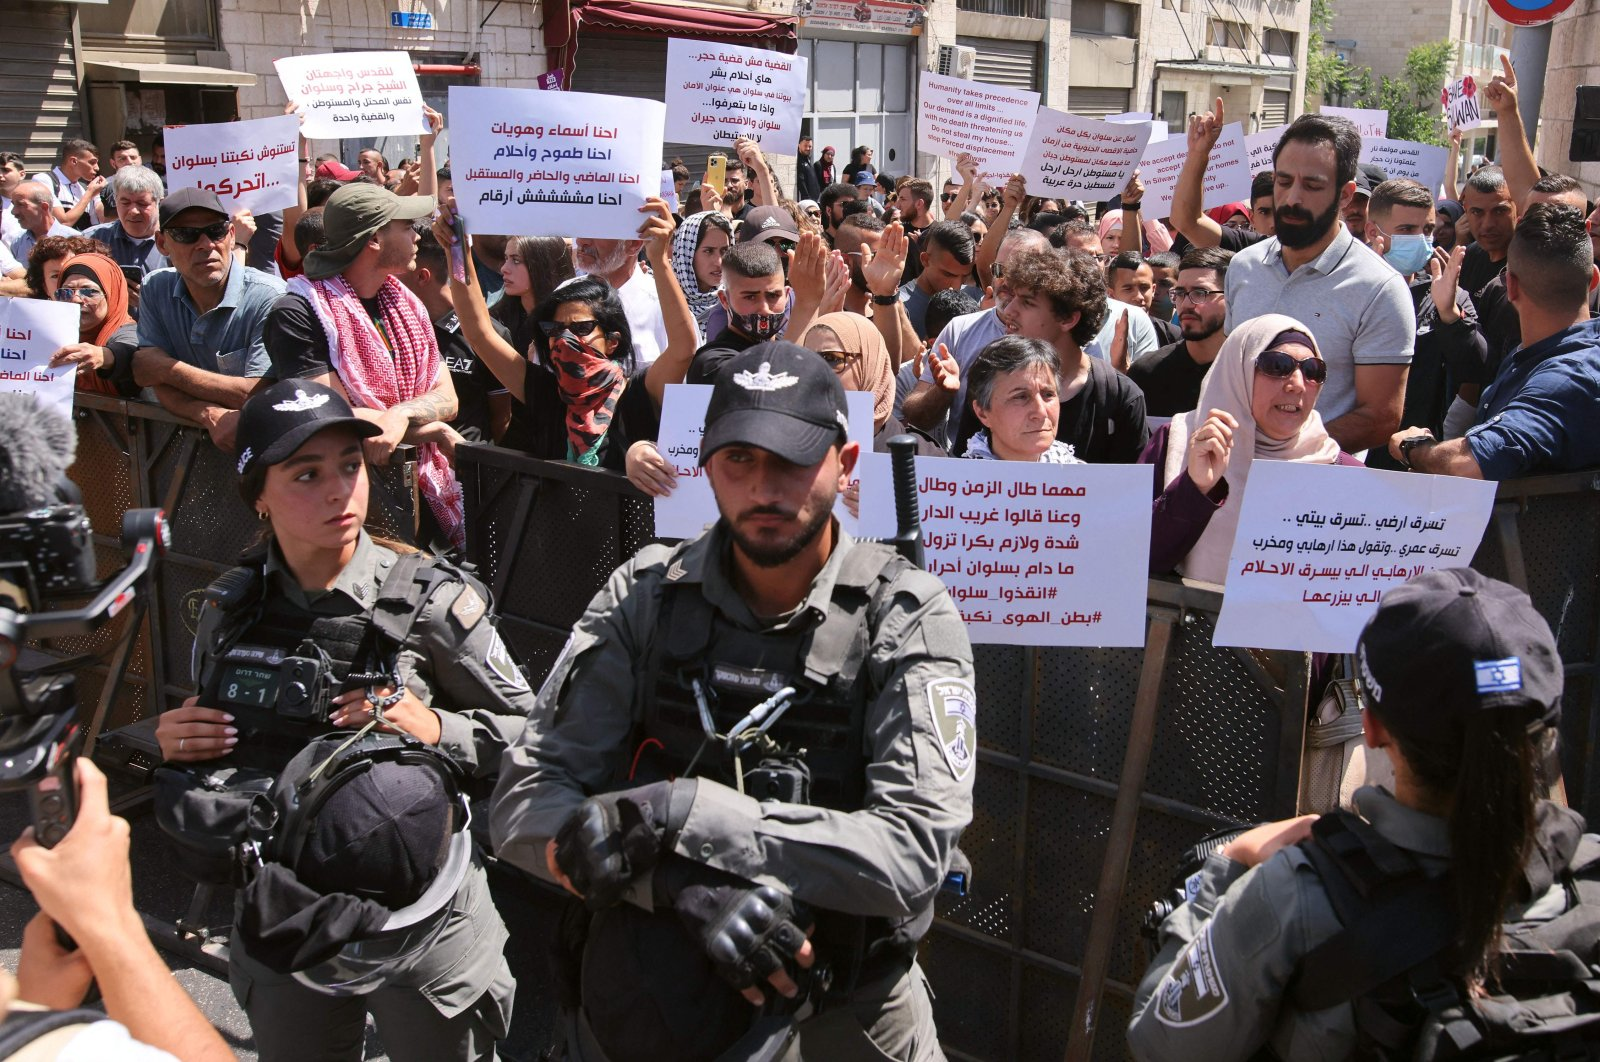 Israeli security forces keep watch as Palestinians shout slogans outside a court during a protest over Israel's planned evictions of Palestinian families from homes in the eastern sector's Silwan district, in Jerusalem, May 26, 2021. (AFP Photo)